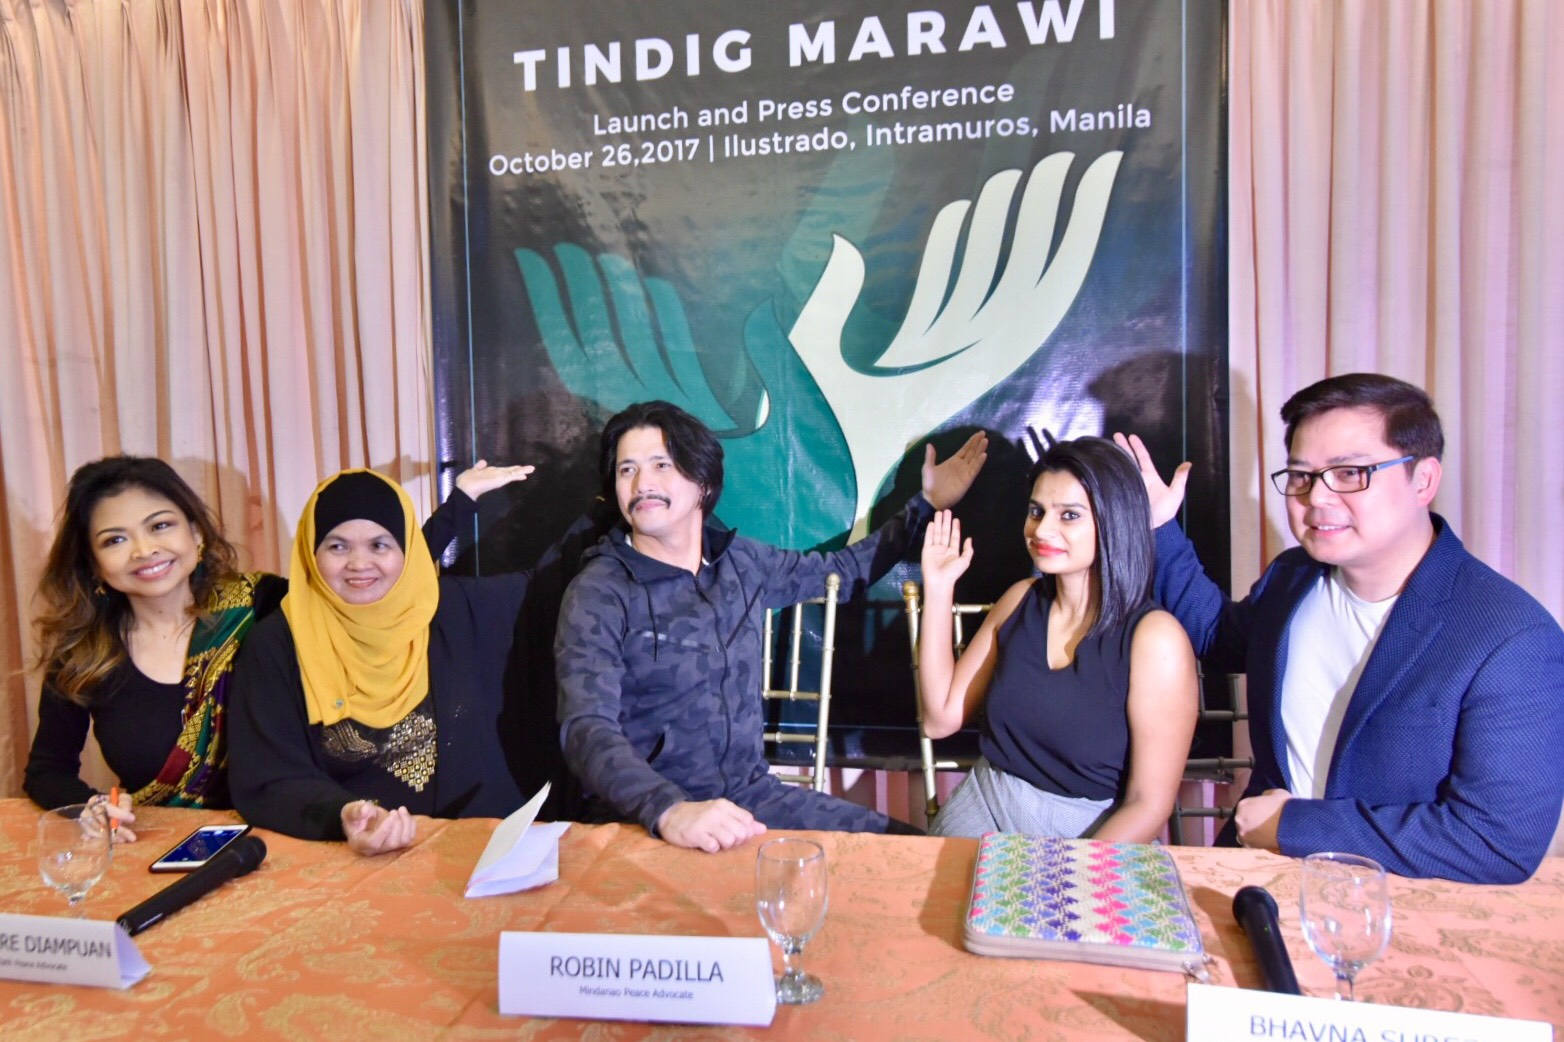 RECOVERY. Launch of Tindig Marawi at Illustrado restaurant in Intramuros, Manila on October 26, 2017. Photo by LeAnne Jazul/Rappler